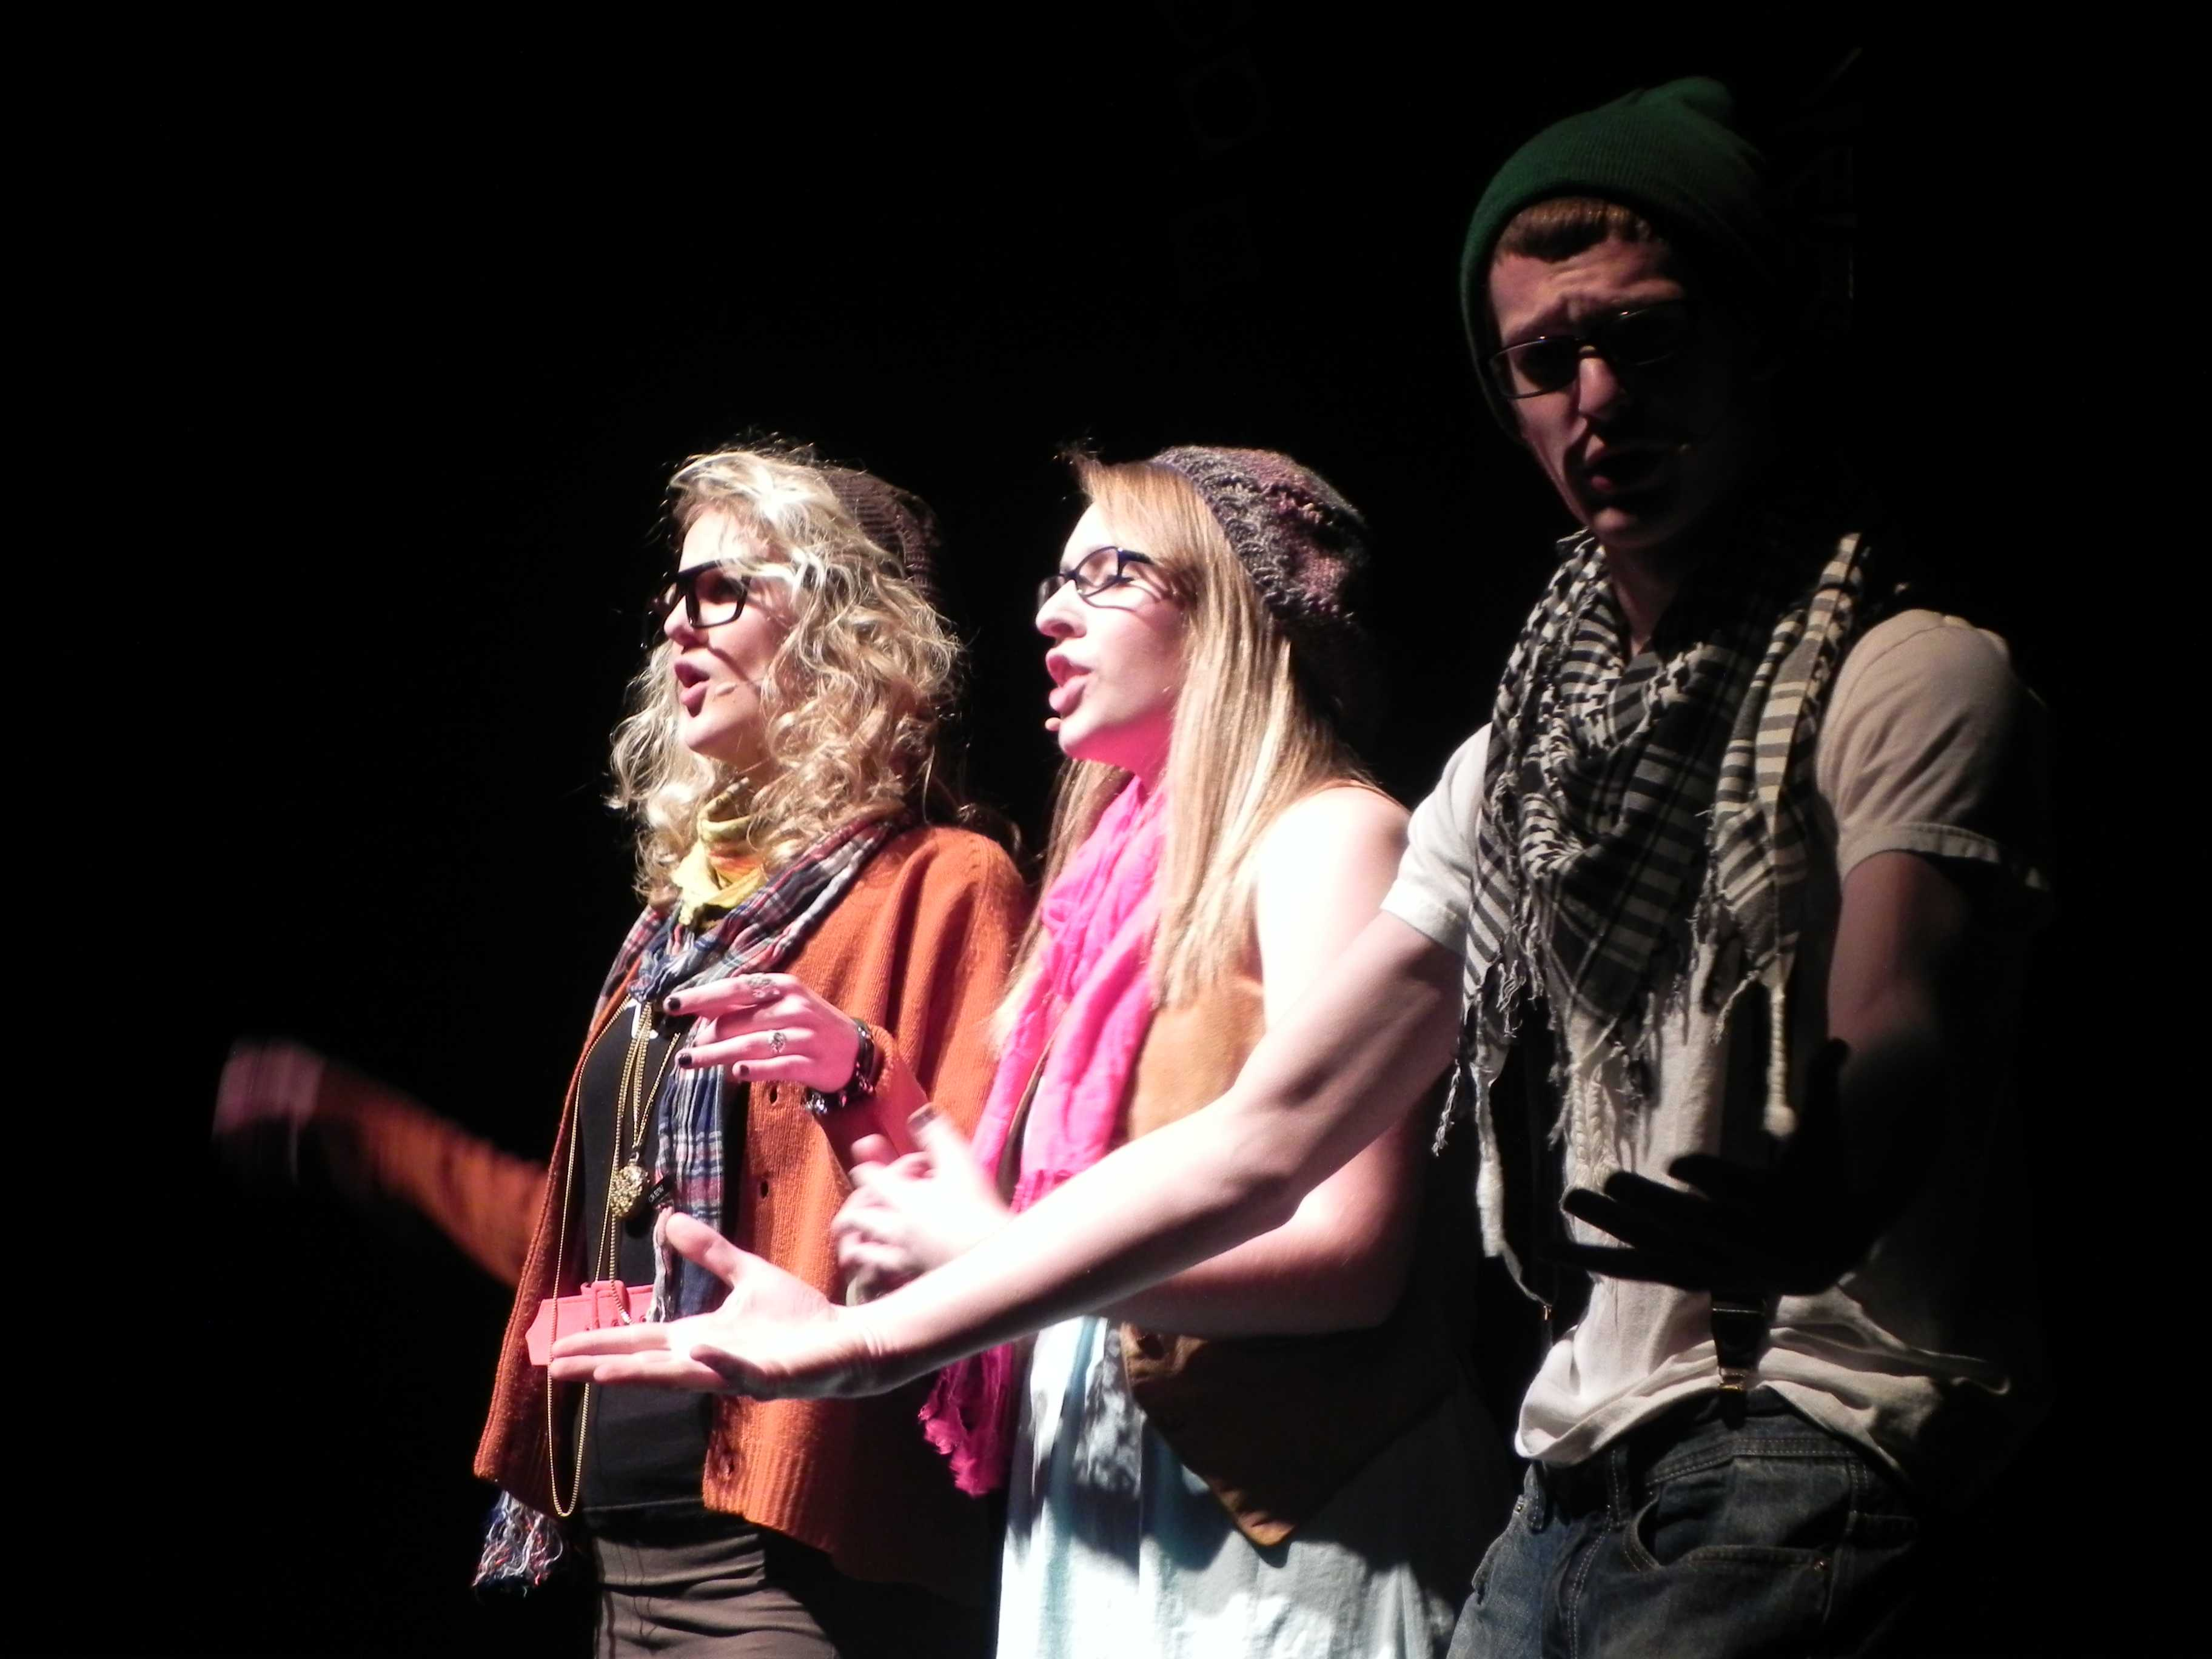 Julia Rampton, Claire Shorin and Corey Garff hosted all five shows of Future Stars 2011.